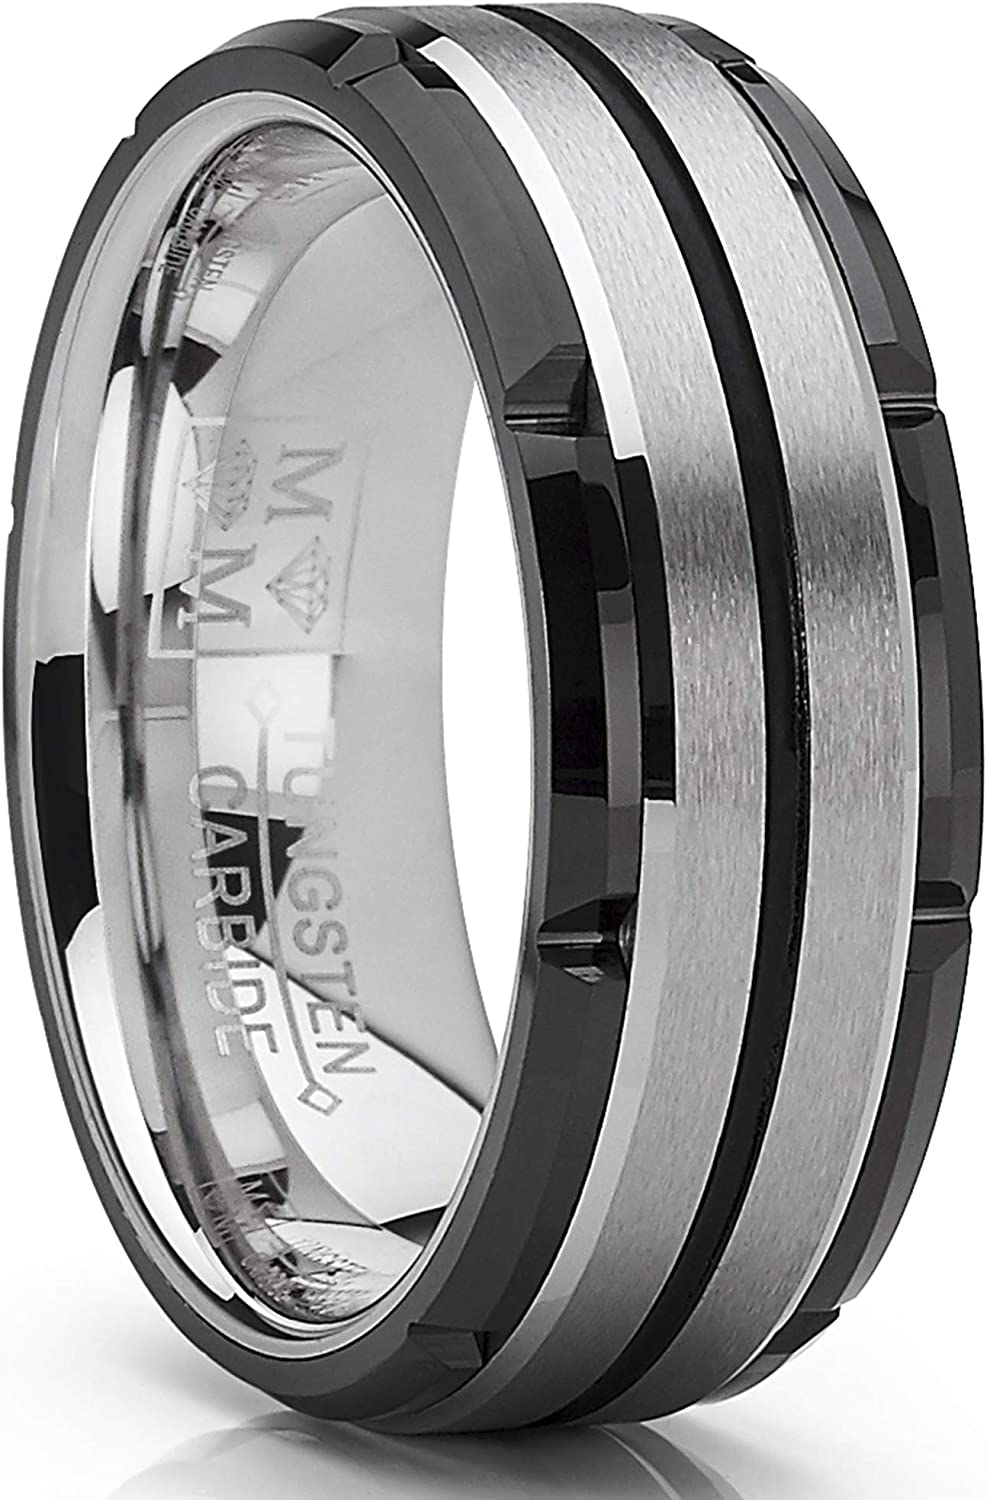 Metal Masters Co. Men's Tungsten Carbide Wedding Band Flat Top Brushed Two Tone Black Ring 8mm